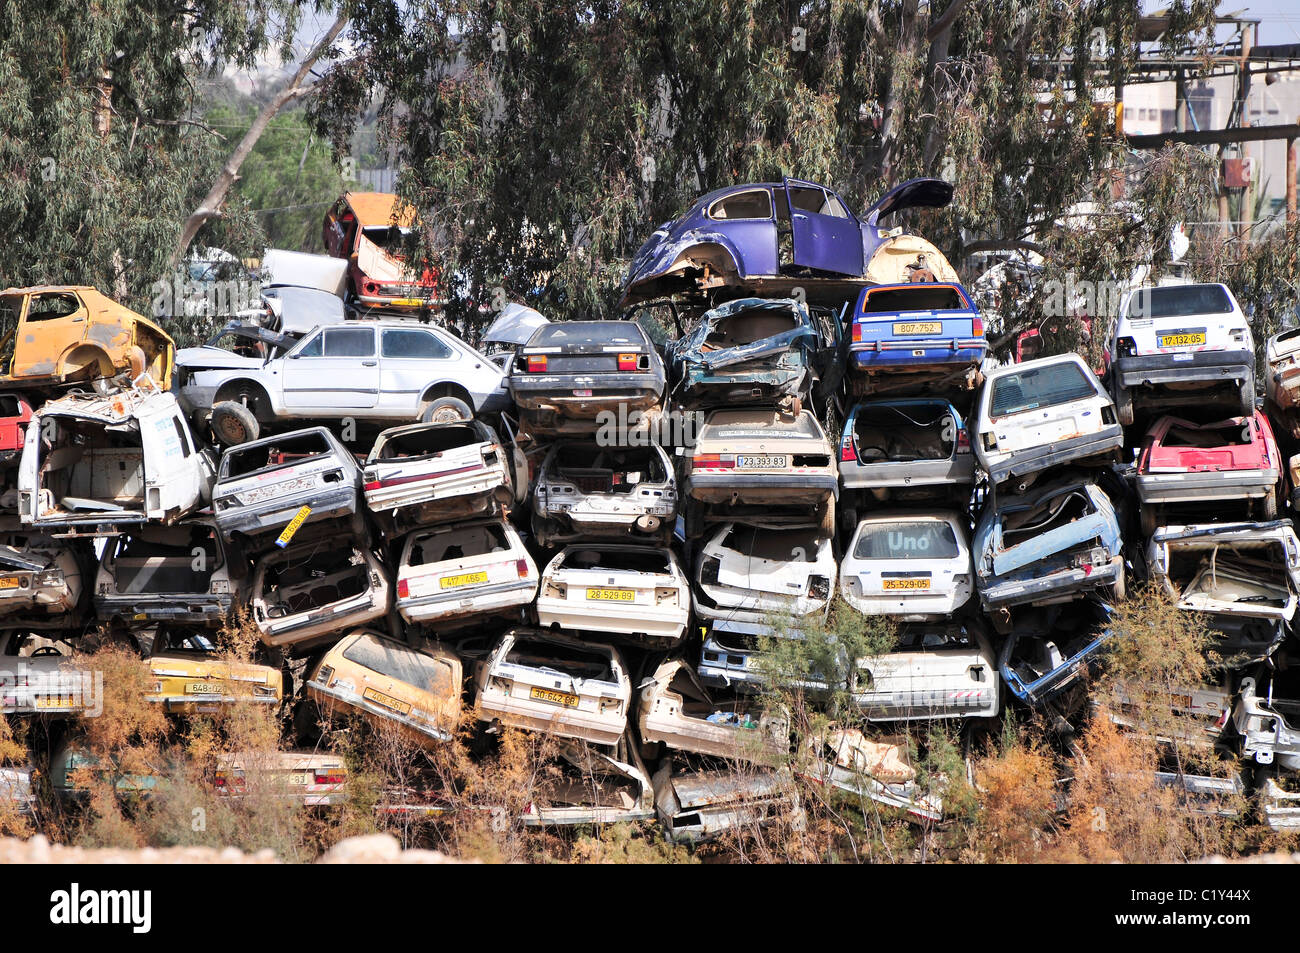 Beer Cars Stock Photos & Beer Cars Stock Images - Alamy